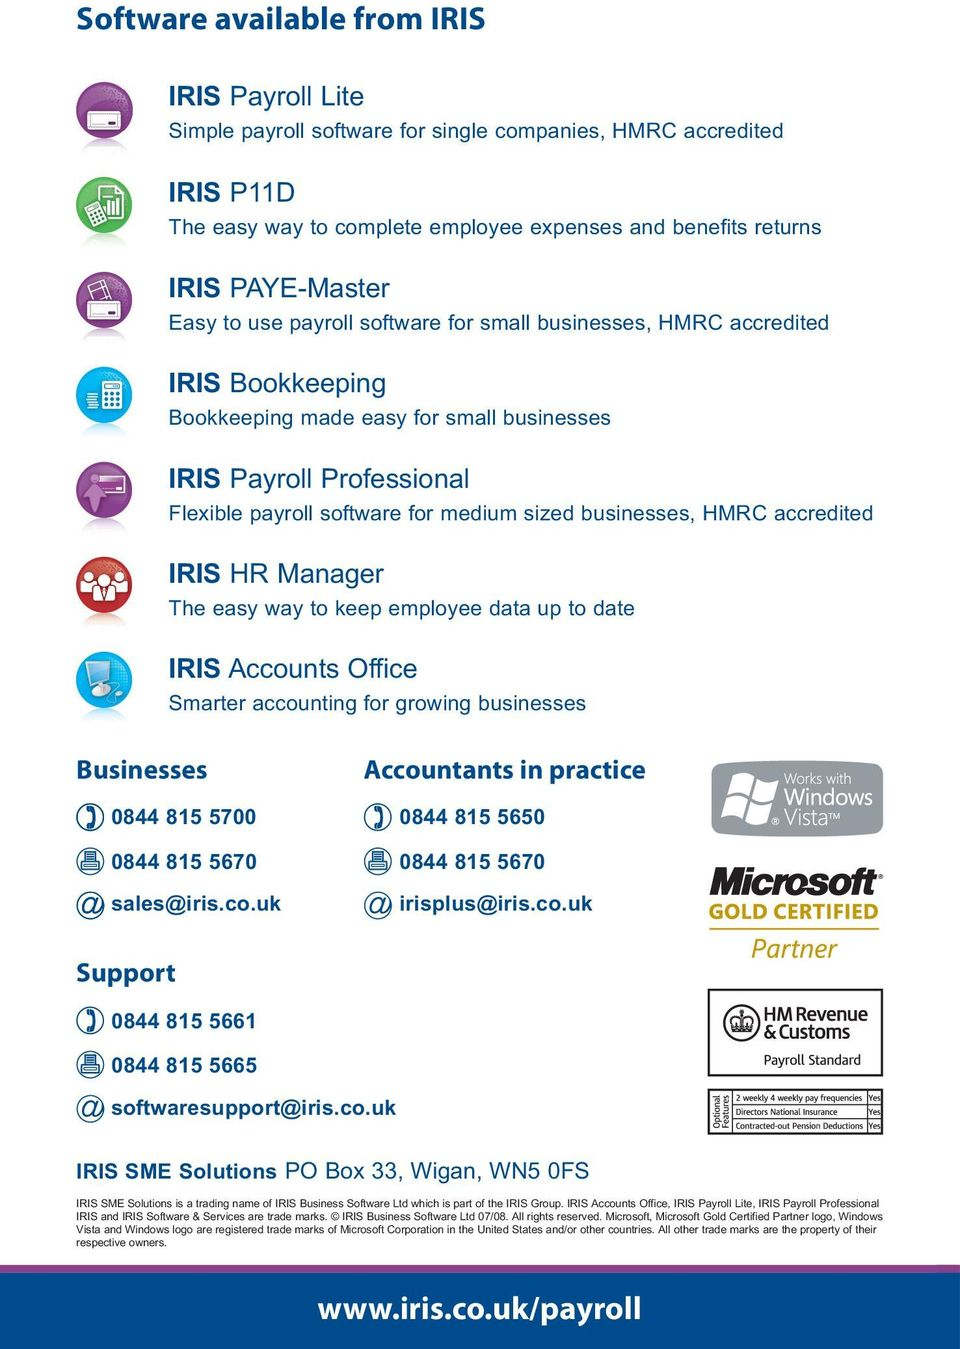 businesses, HMRC accredited IRIS HR Manager The easy way to keep employee data up to date IRIS Accounts Office Smarter accounting for growing businesses Businesses 0844 815 5700 0844 815 5670